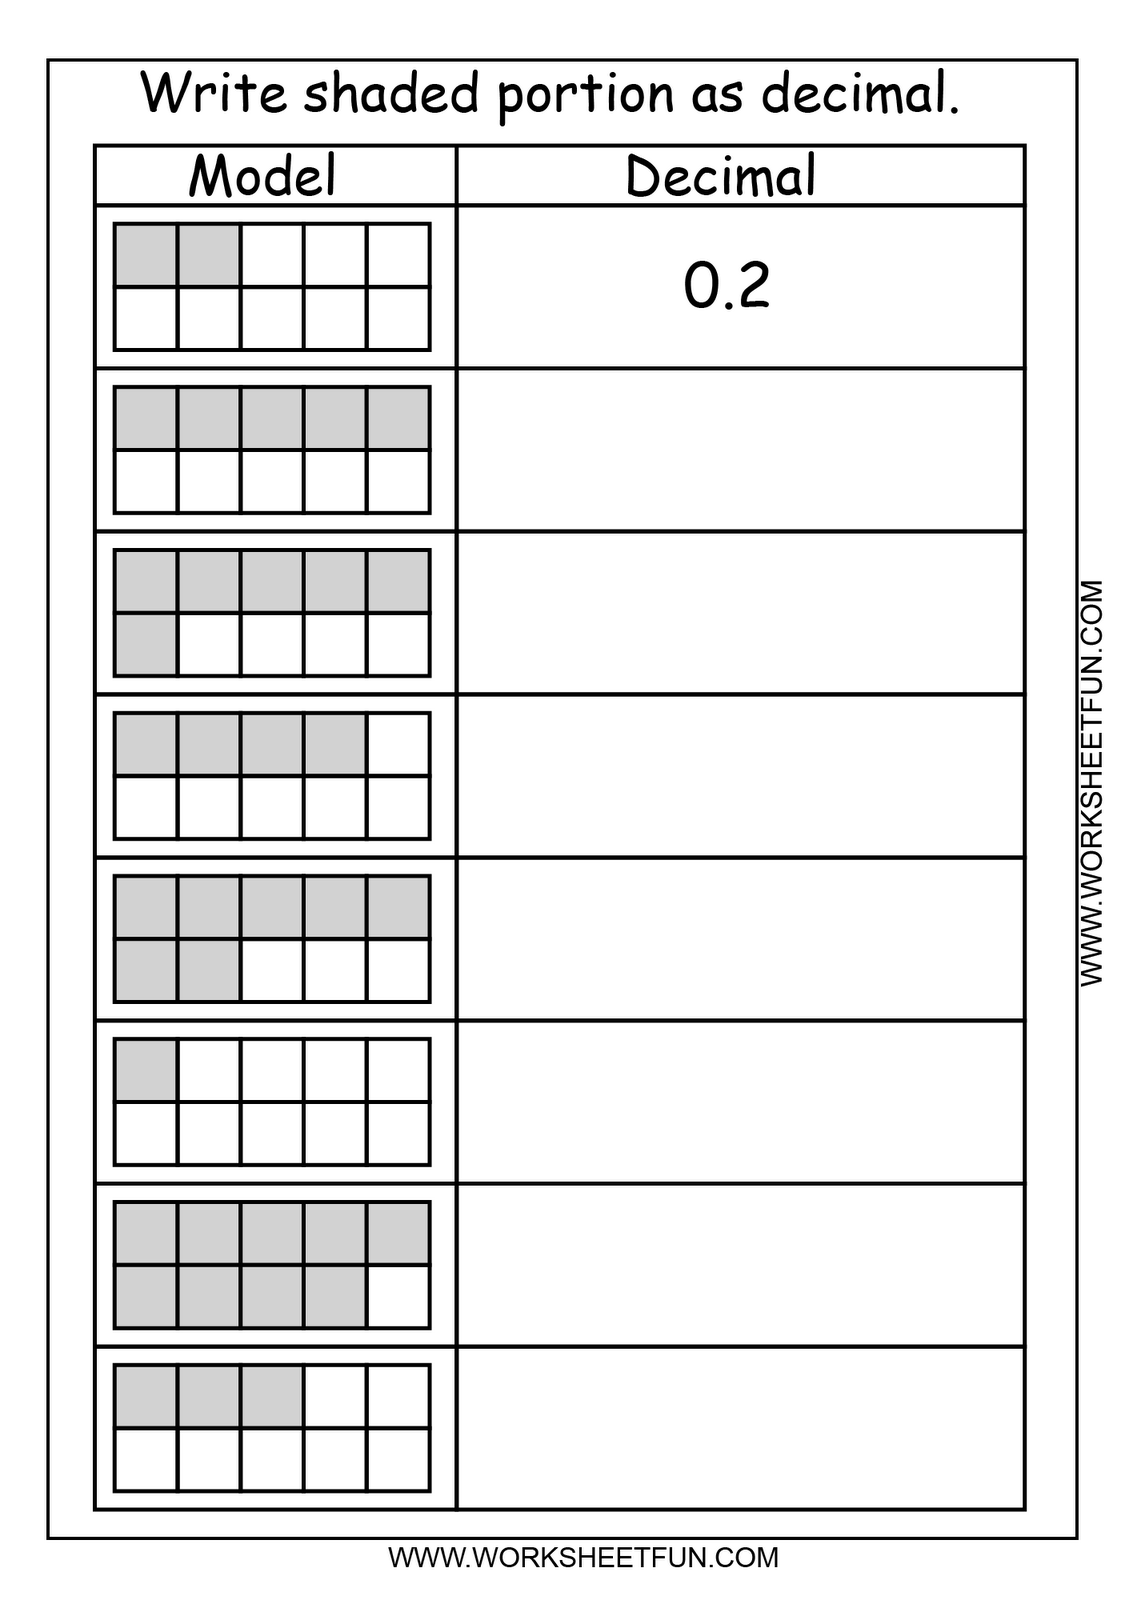 small resolution of Worksheetfun - FREE PRINTABLE WORKSHEETS   Fractions